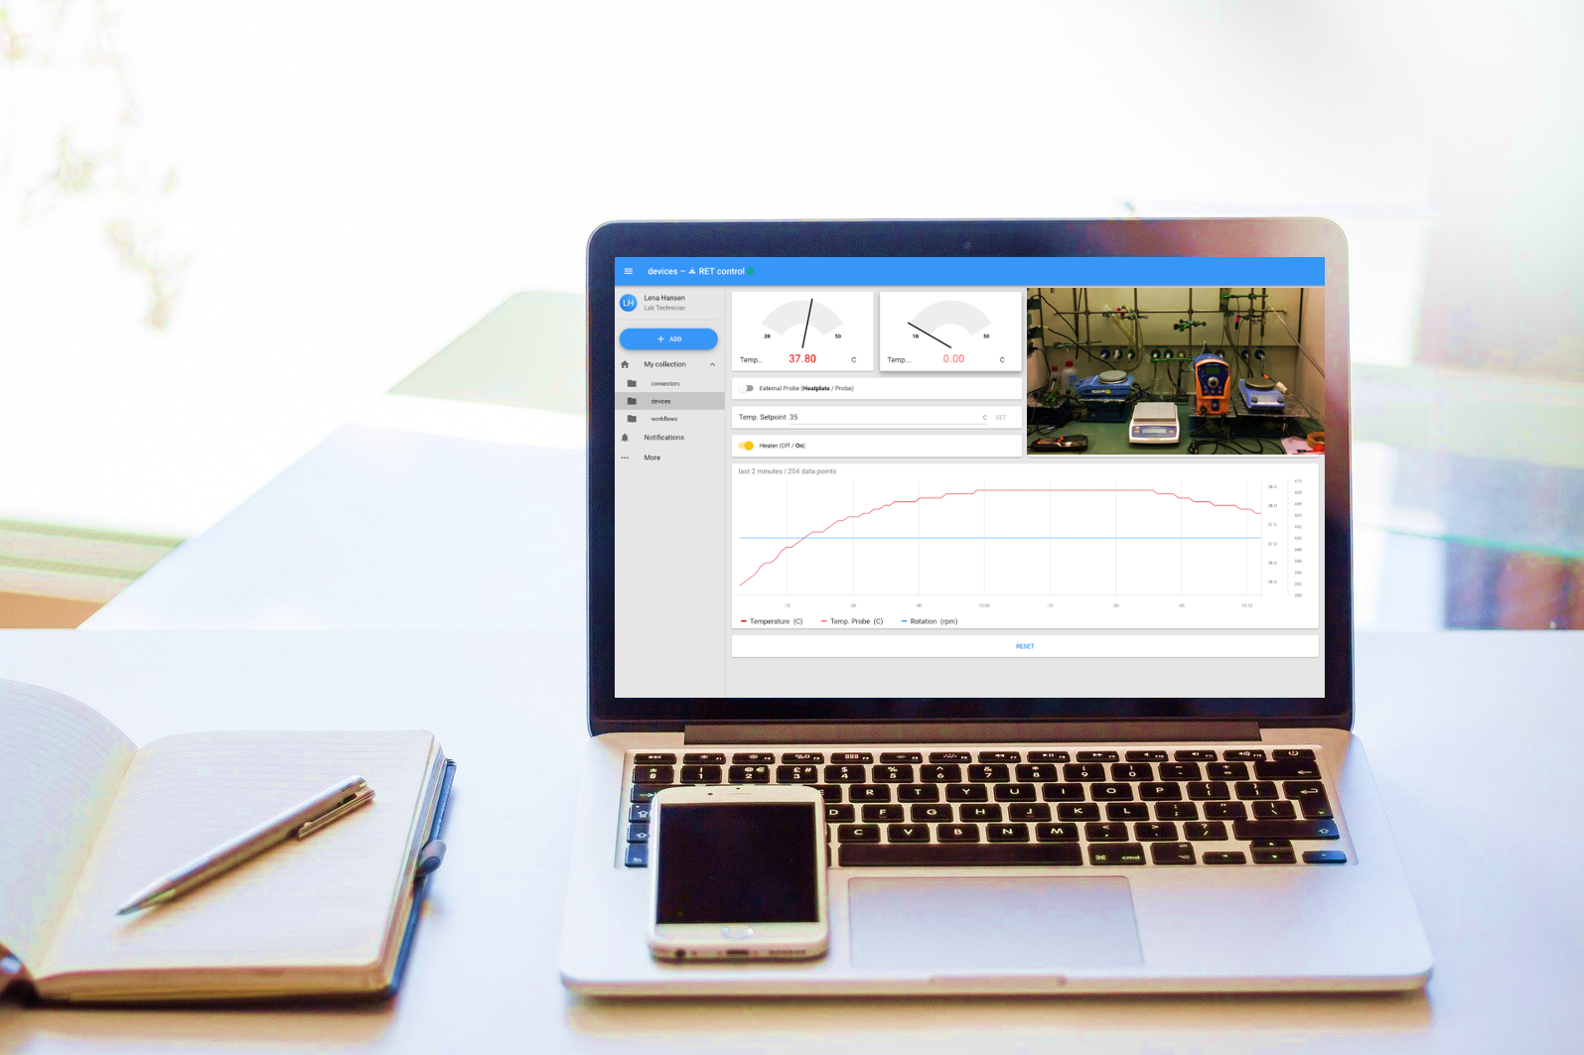 Advantages of lab monitoring, laptop with Laboperator interface